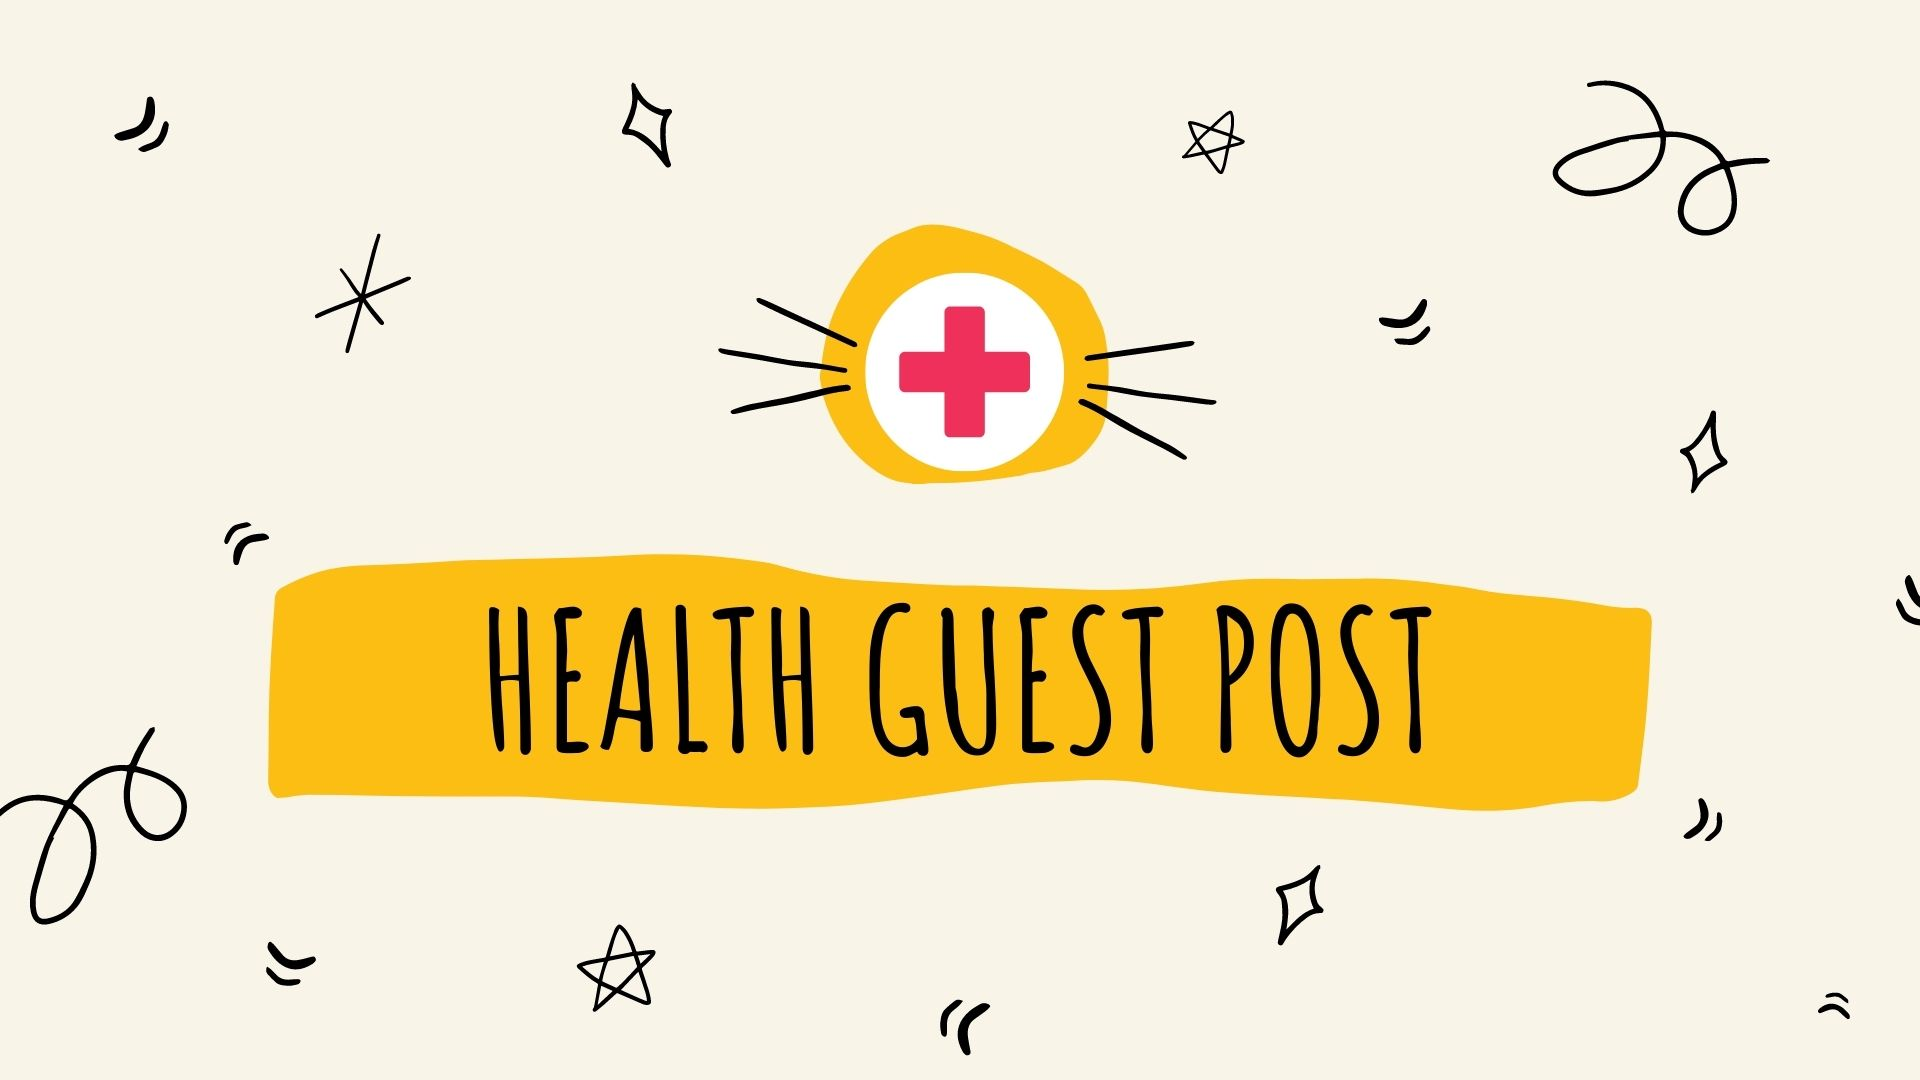 I will provide 5 permanent health guest post